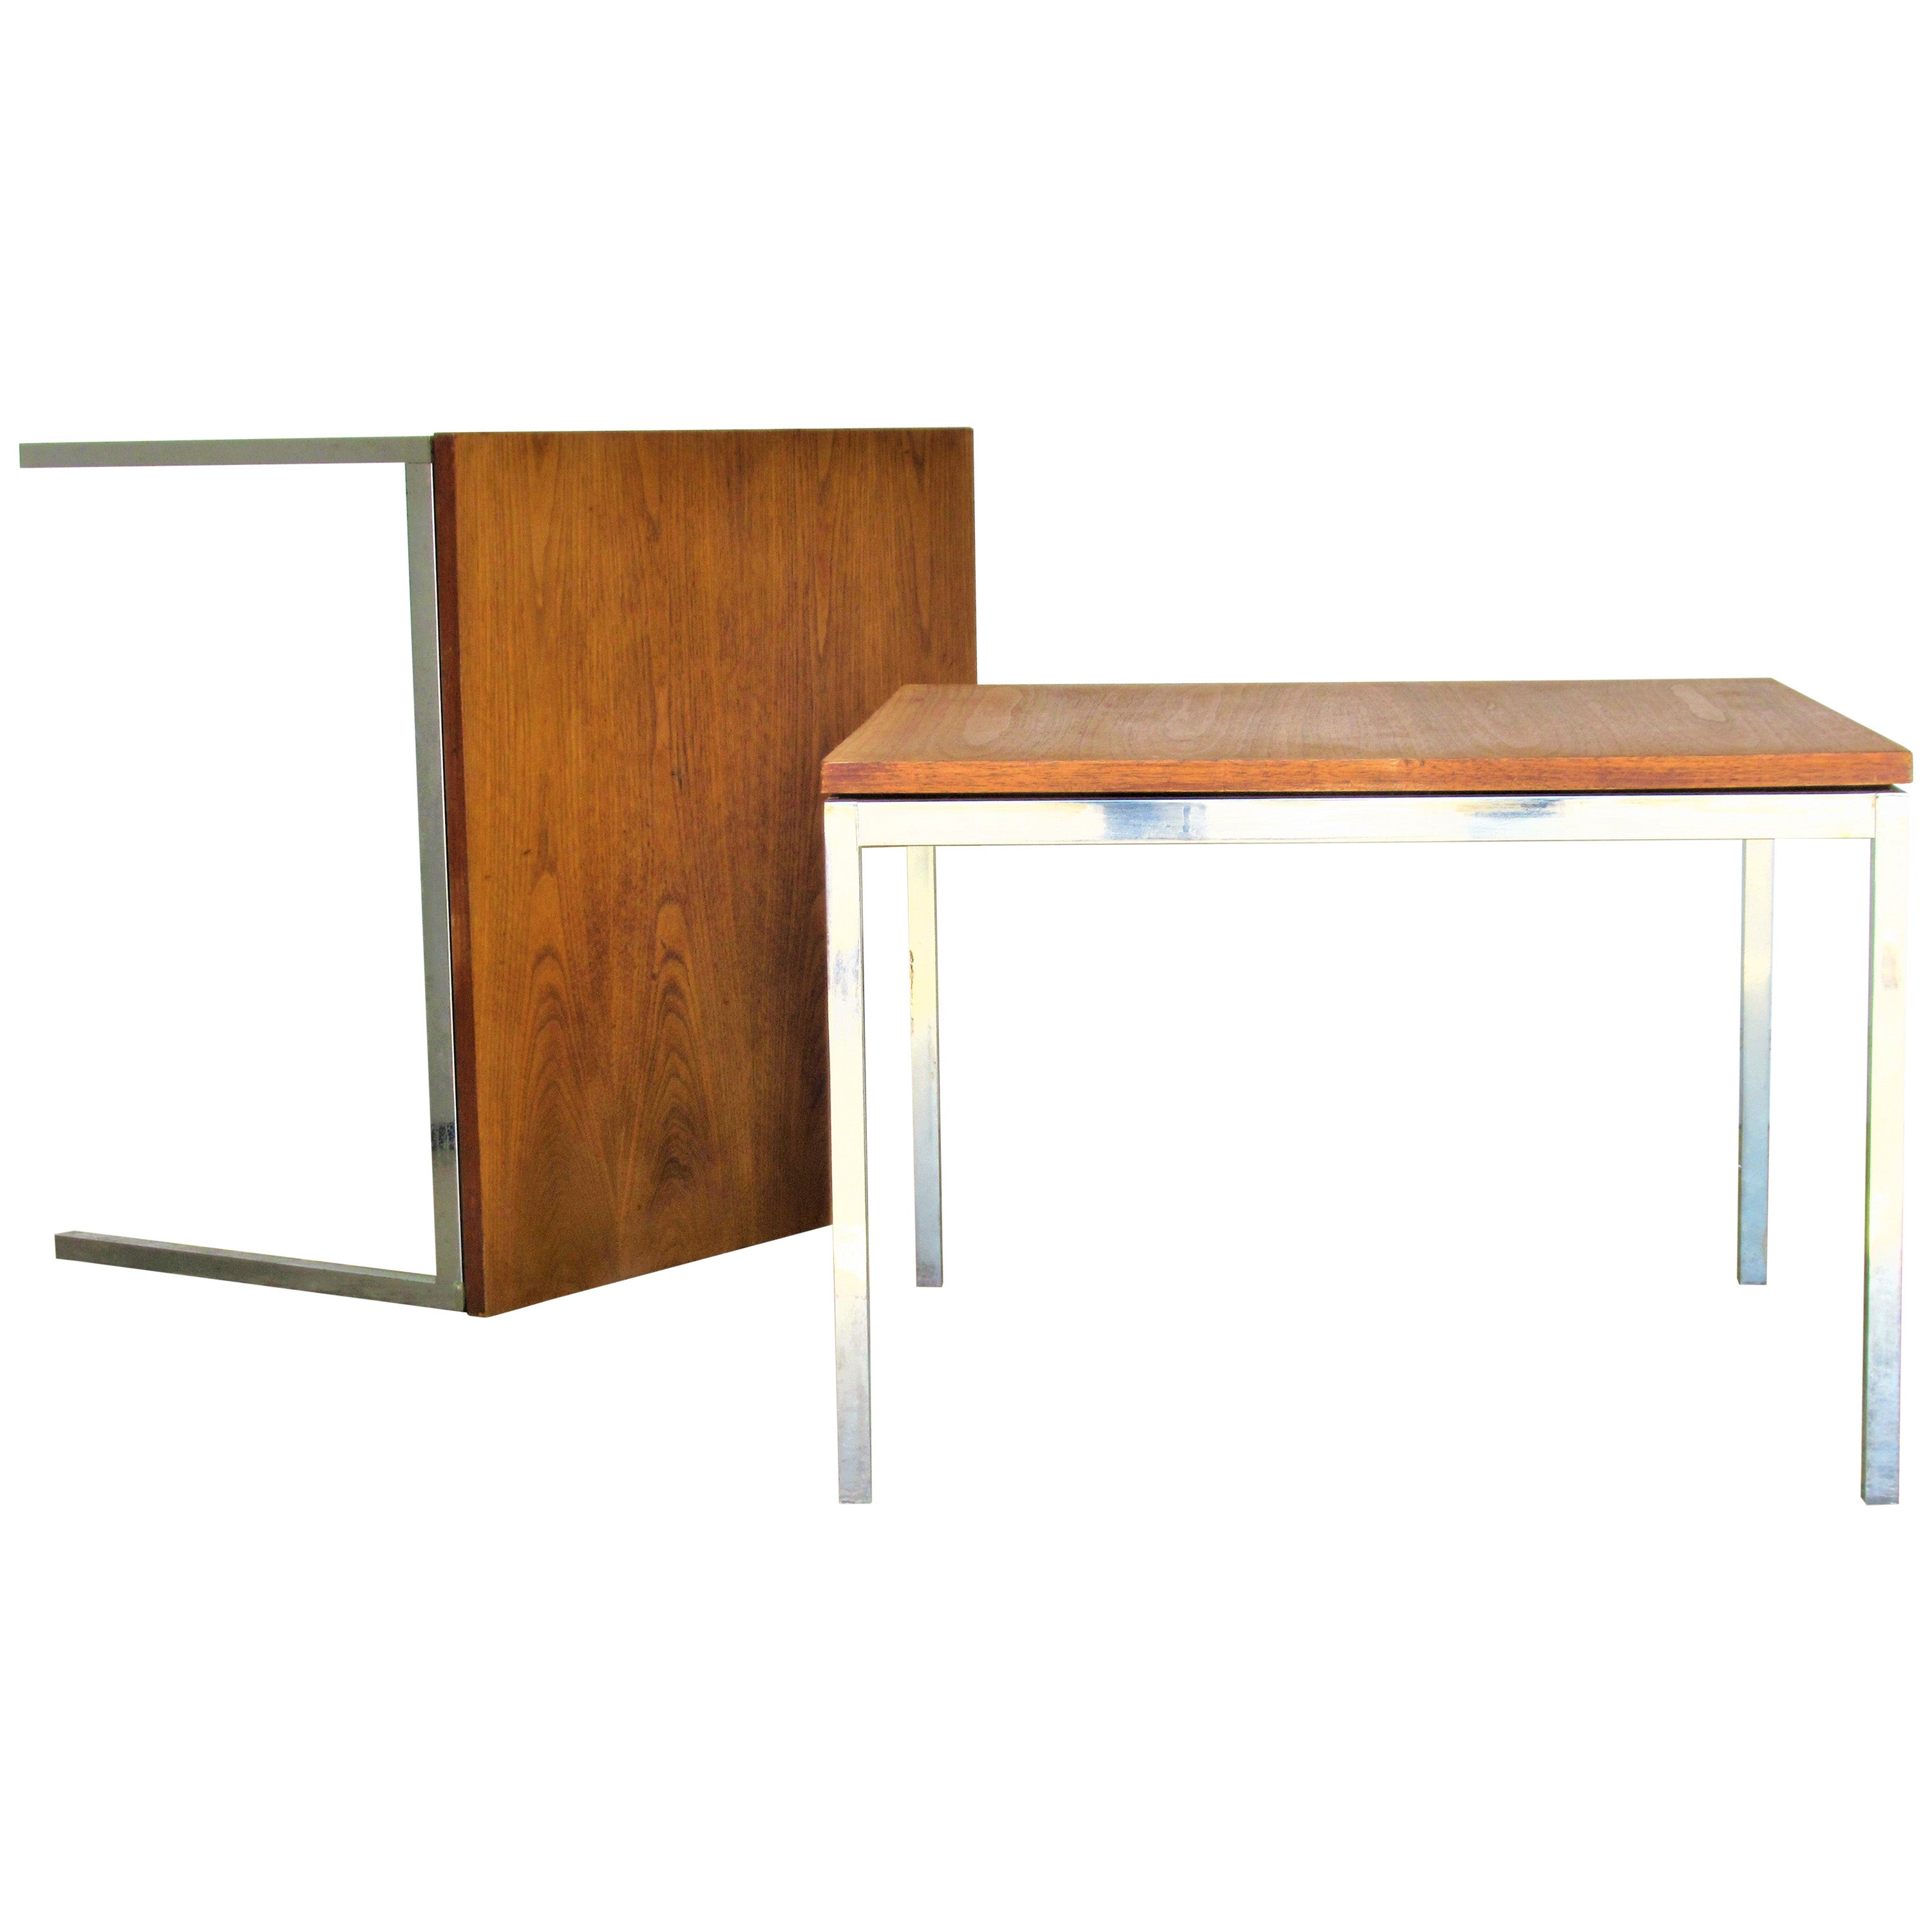 Tables Knoll Pair Of Steel And Walnut Tables By Florence Knoll